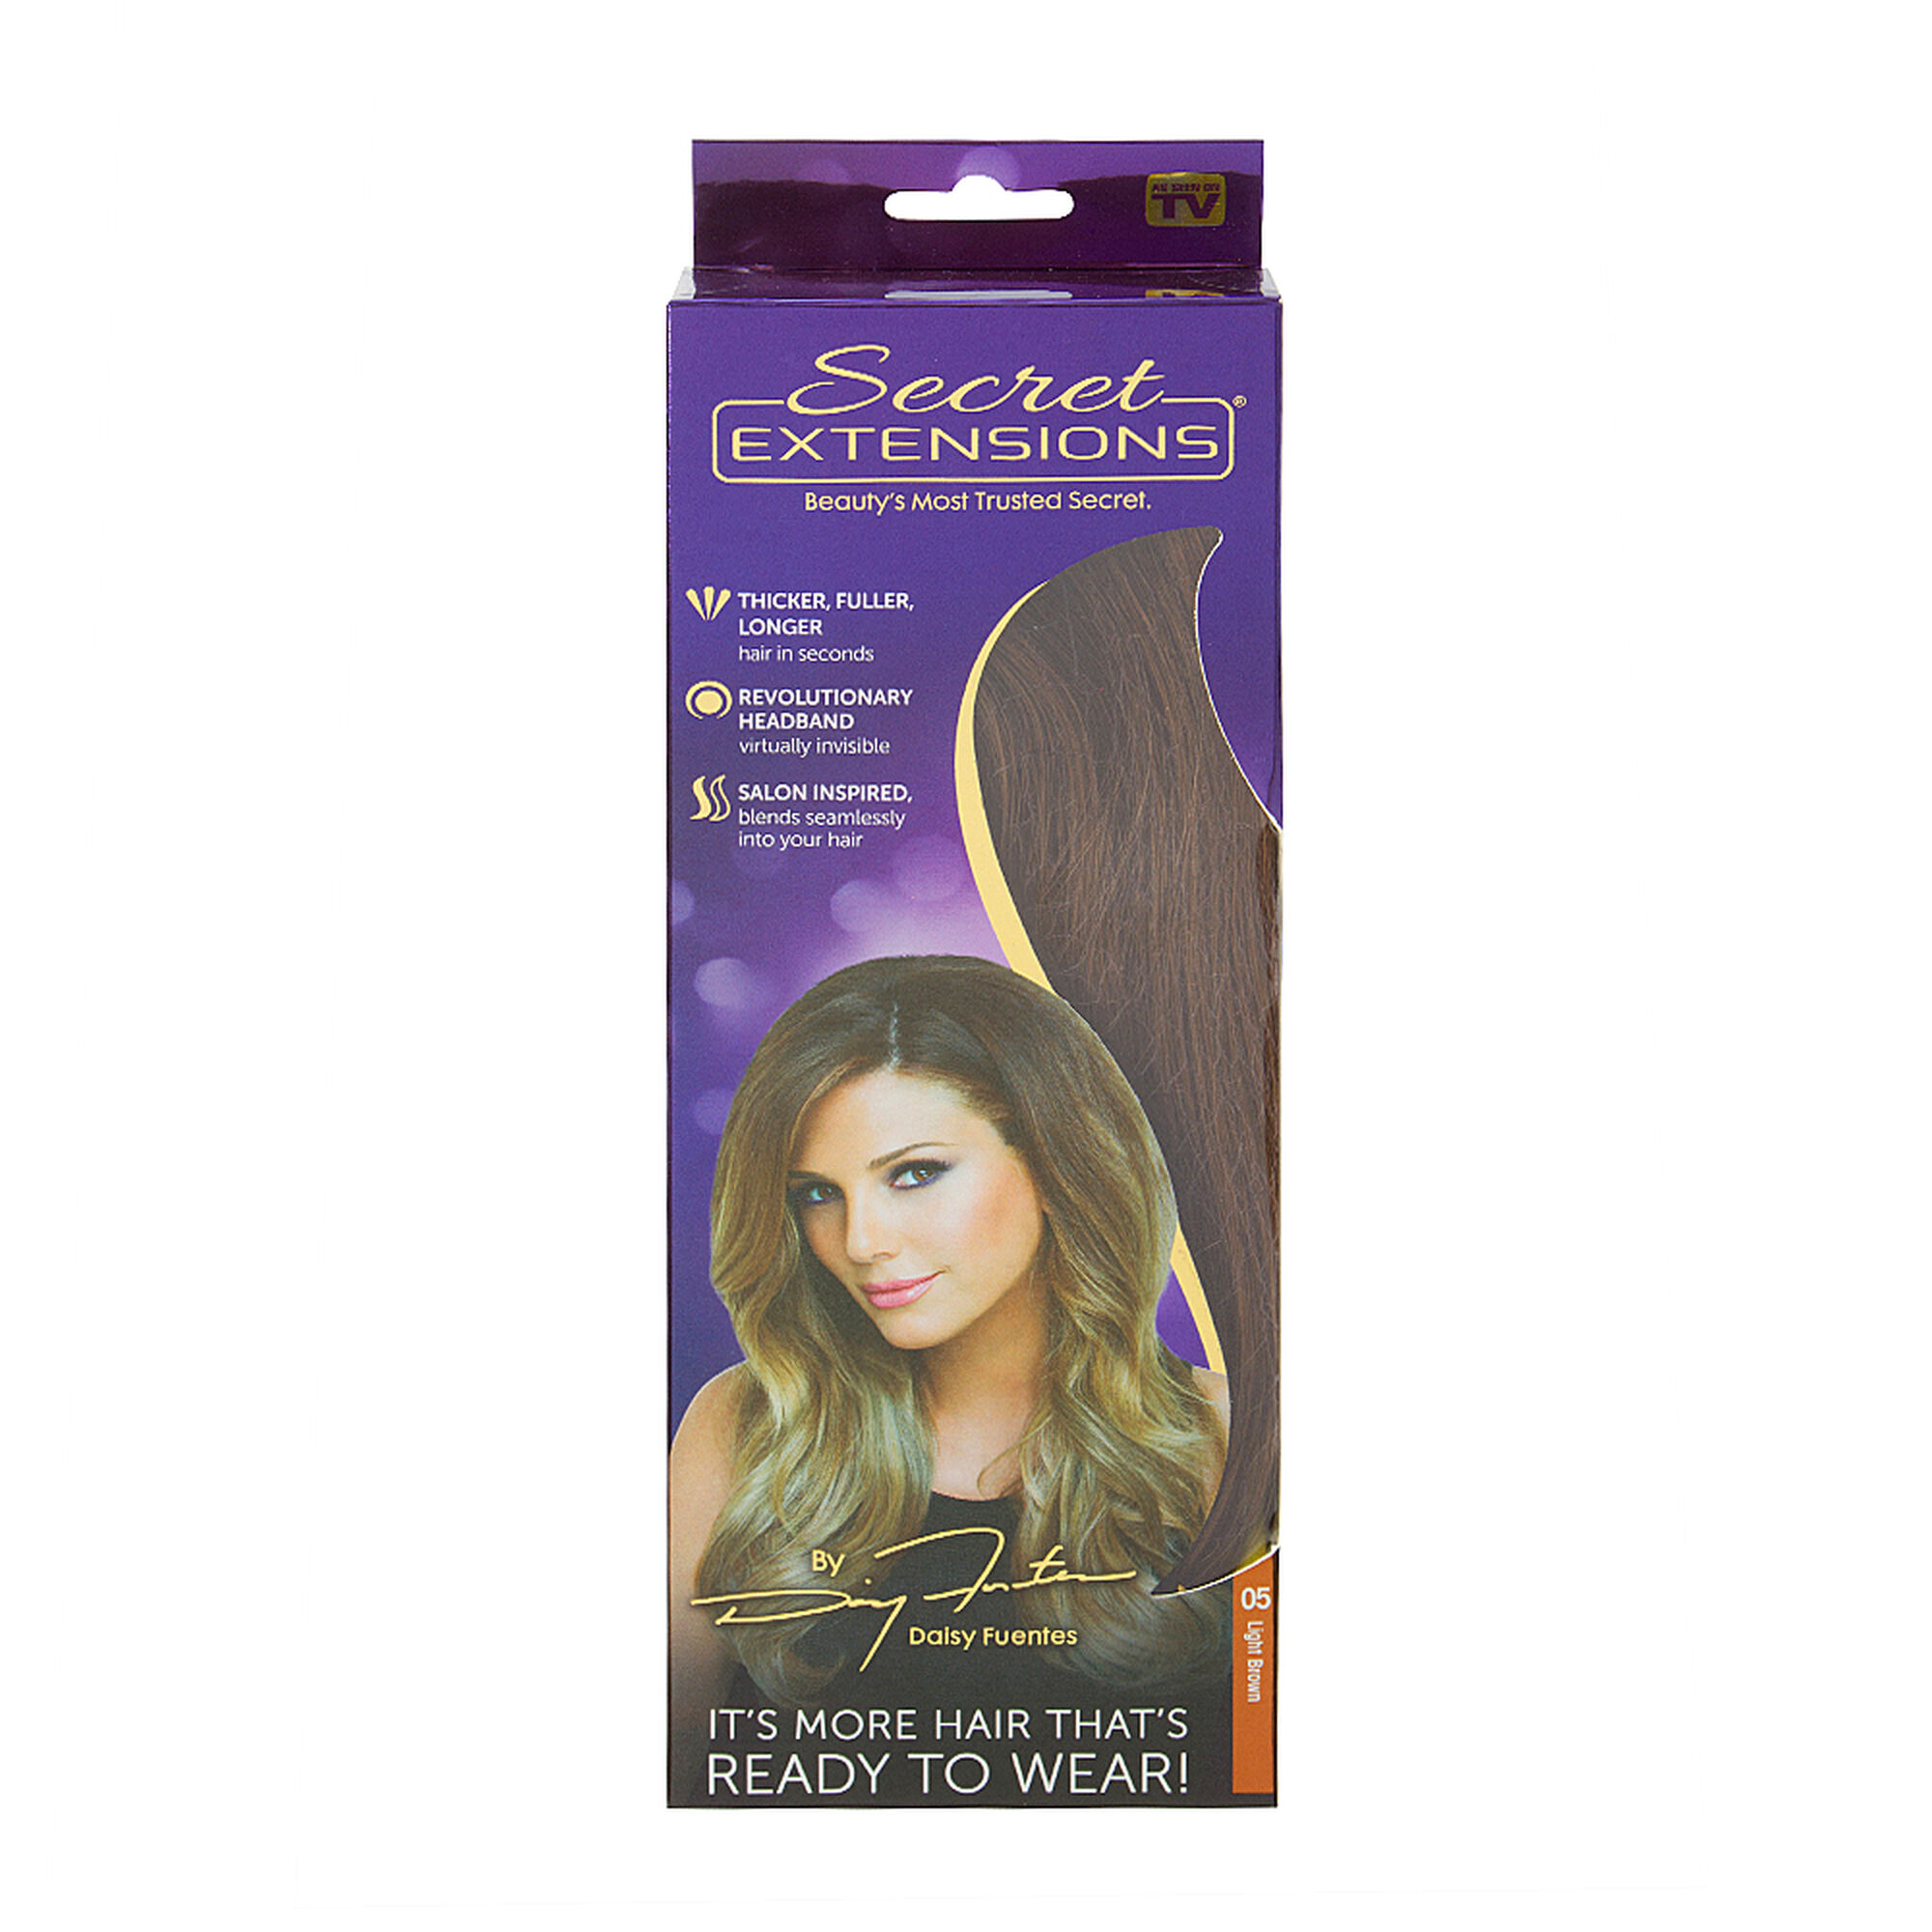 Secret extensions by daisy fuentes icing us secret extensionsreg by daisy fuentes pmusecretfo Gallery